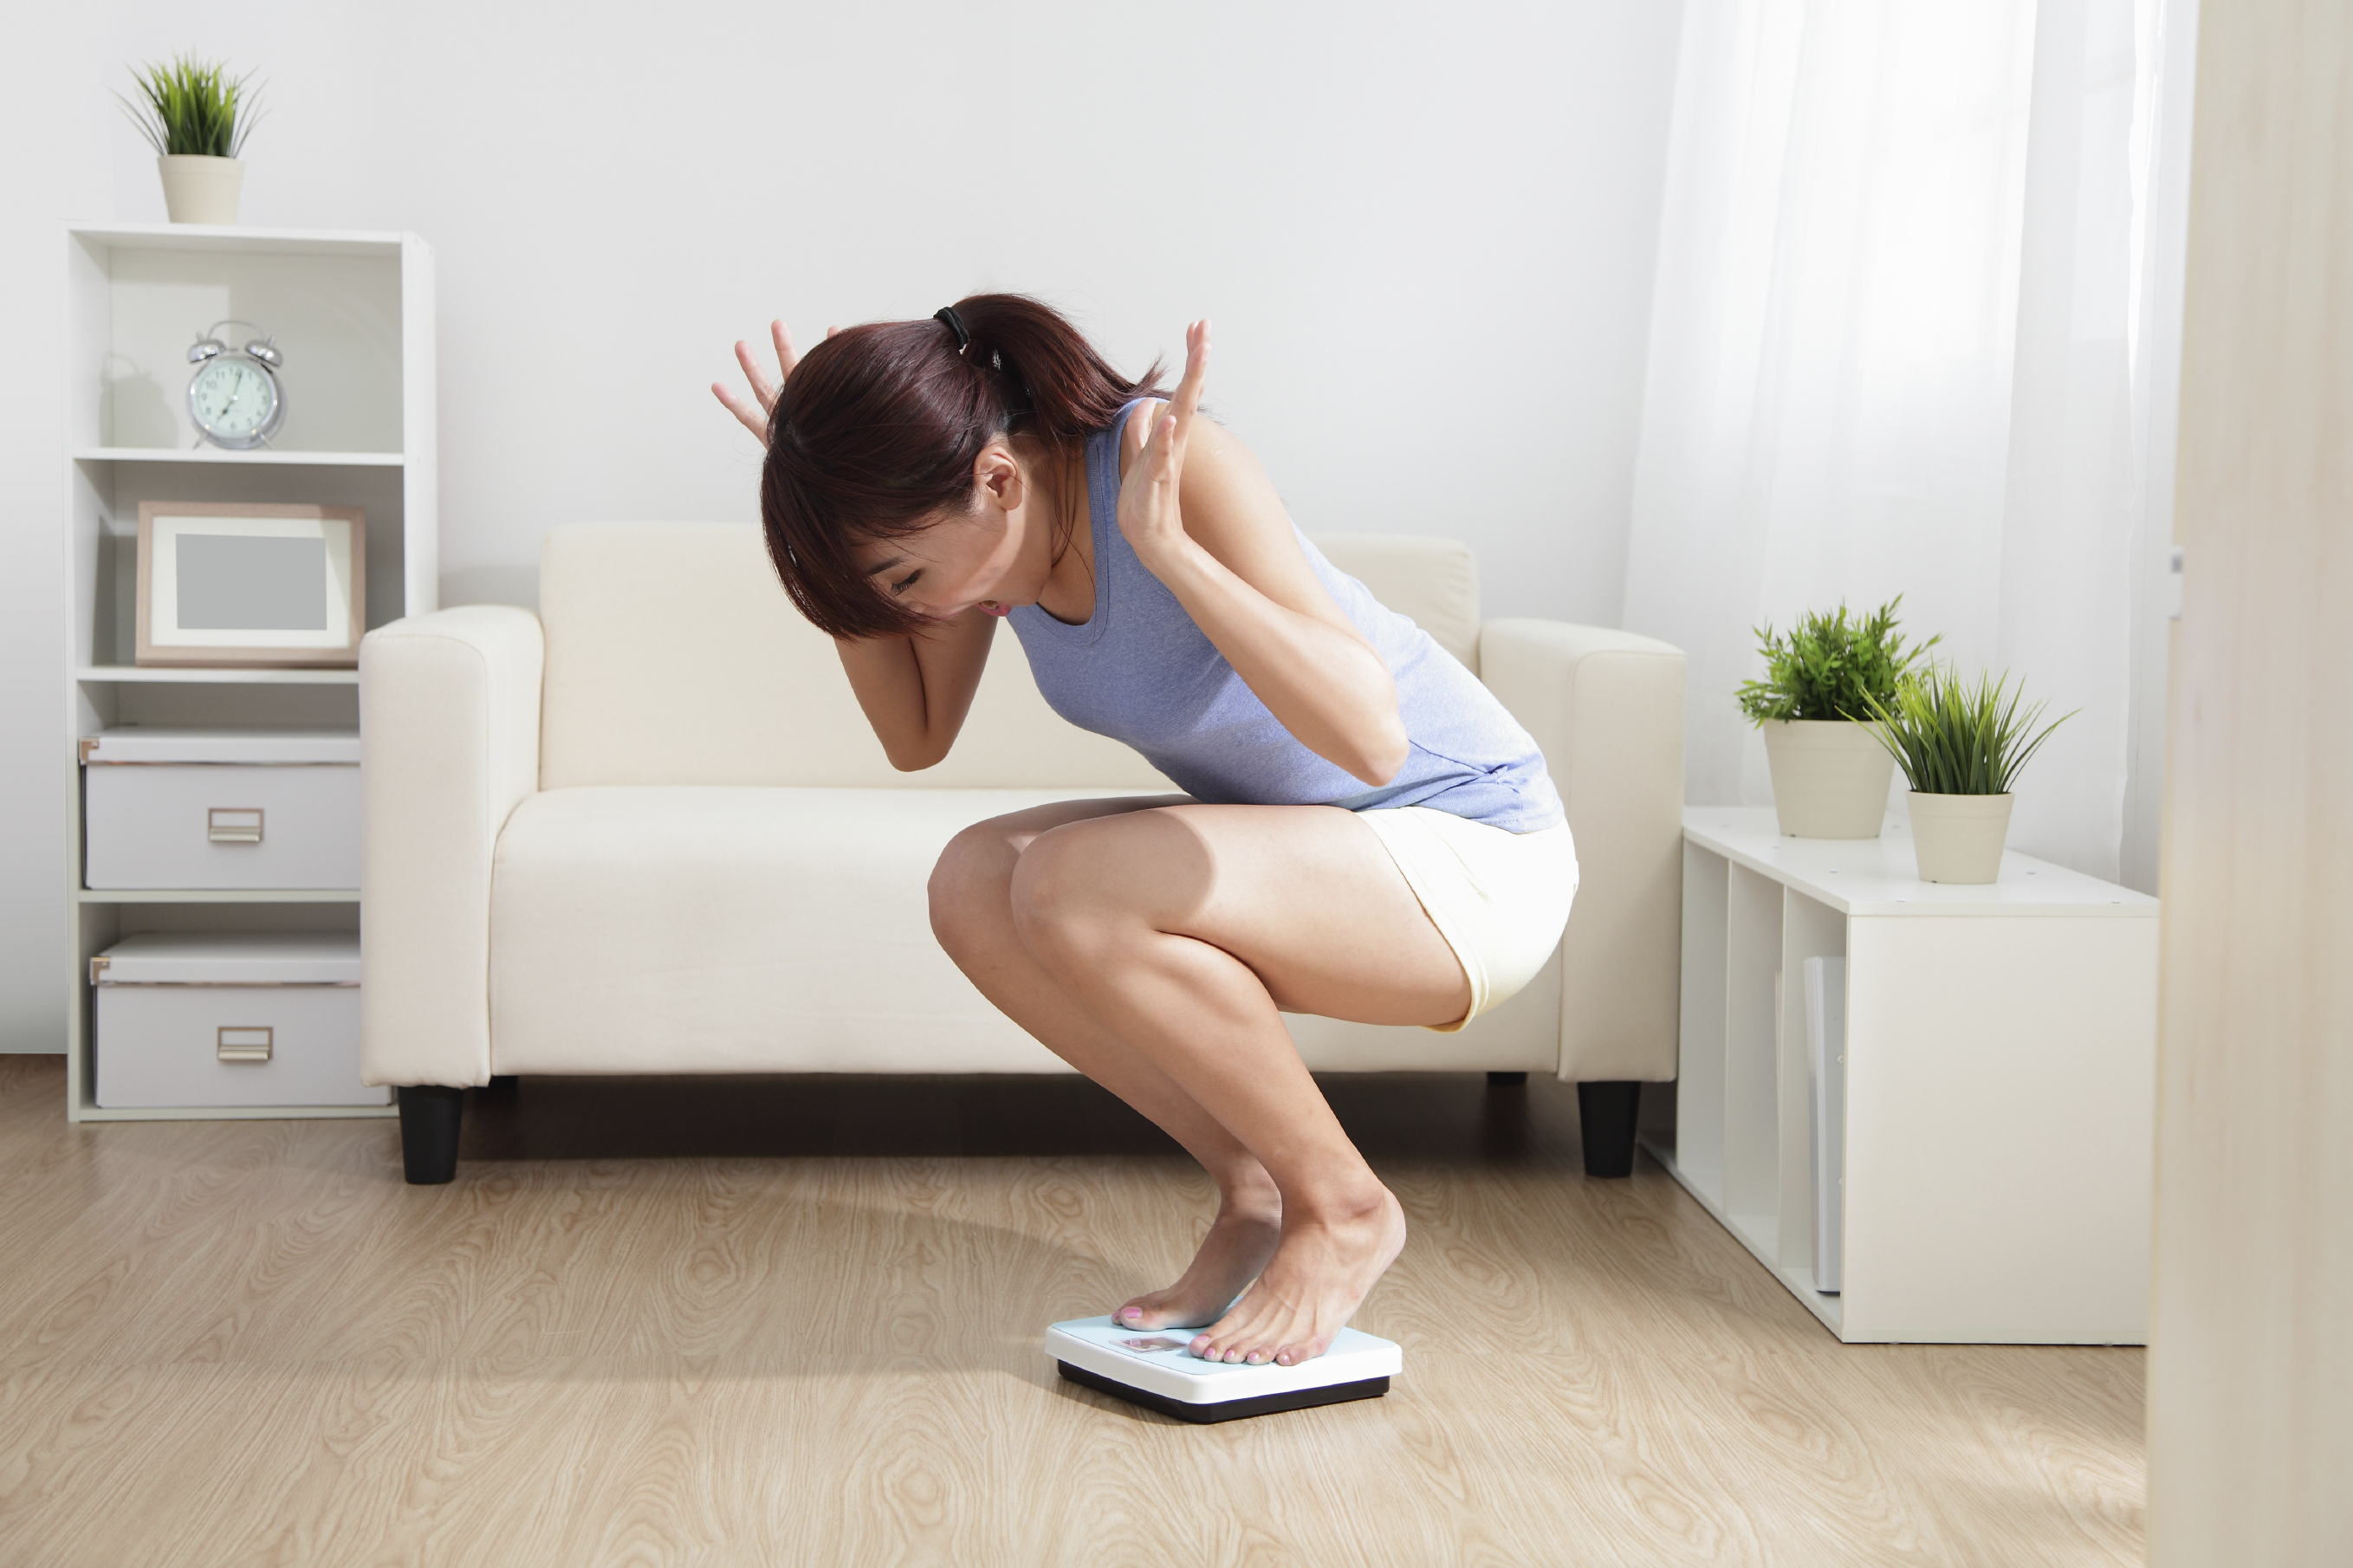 Why should you lose weight?